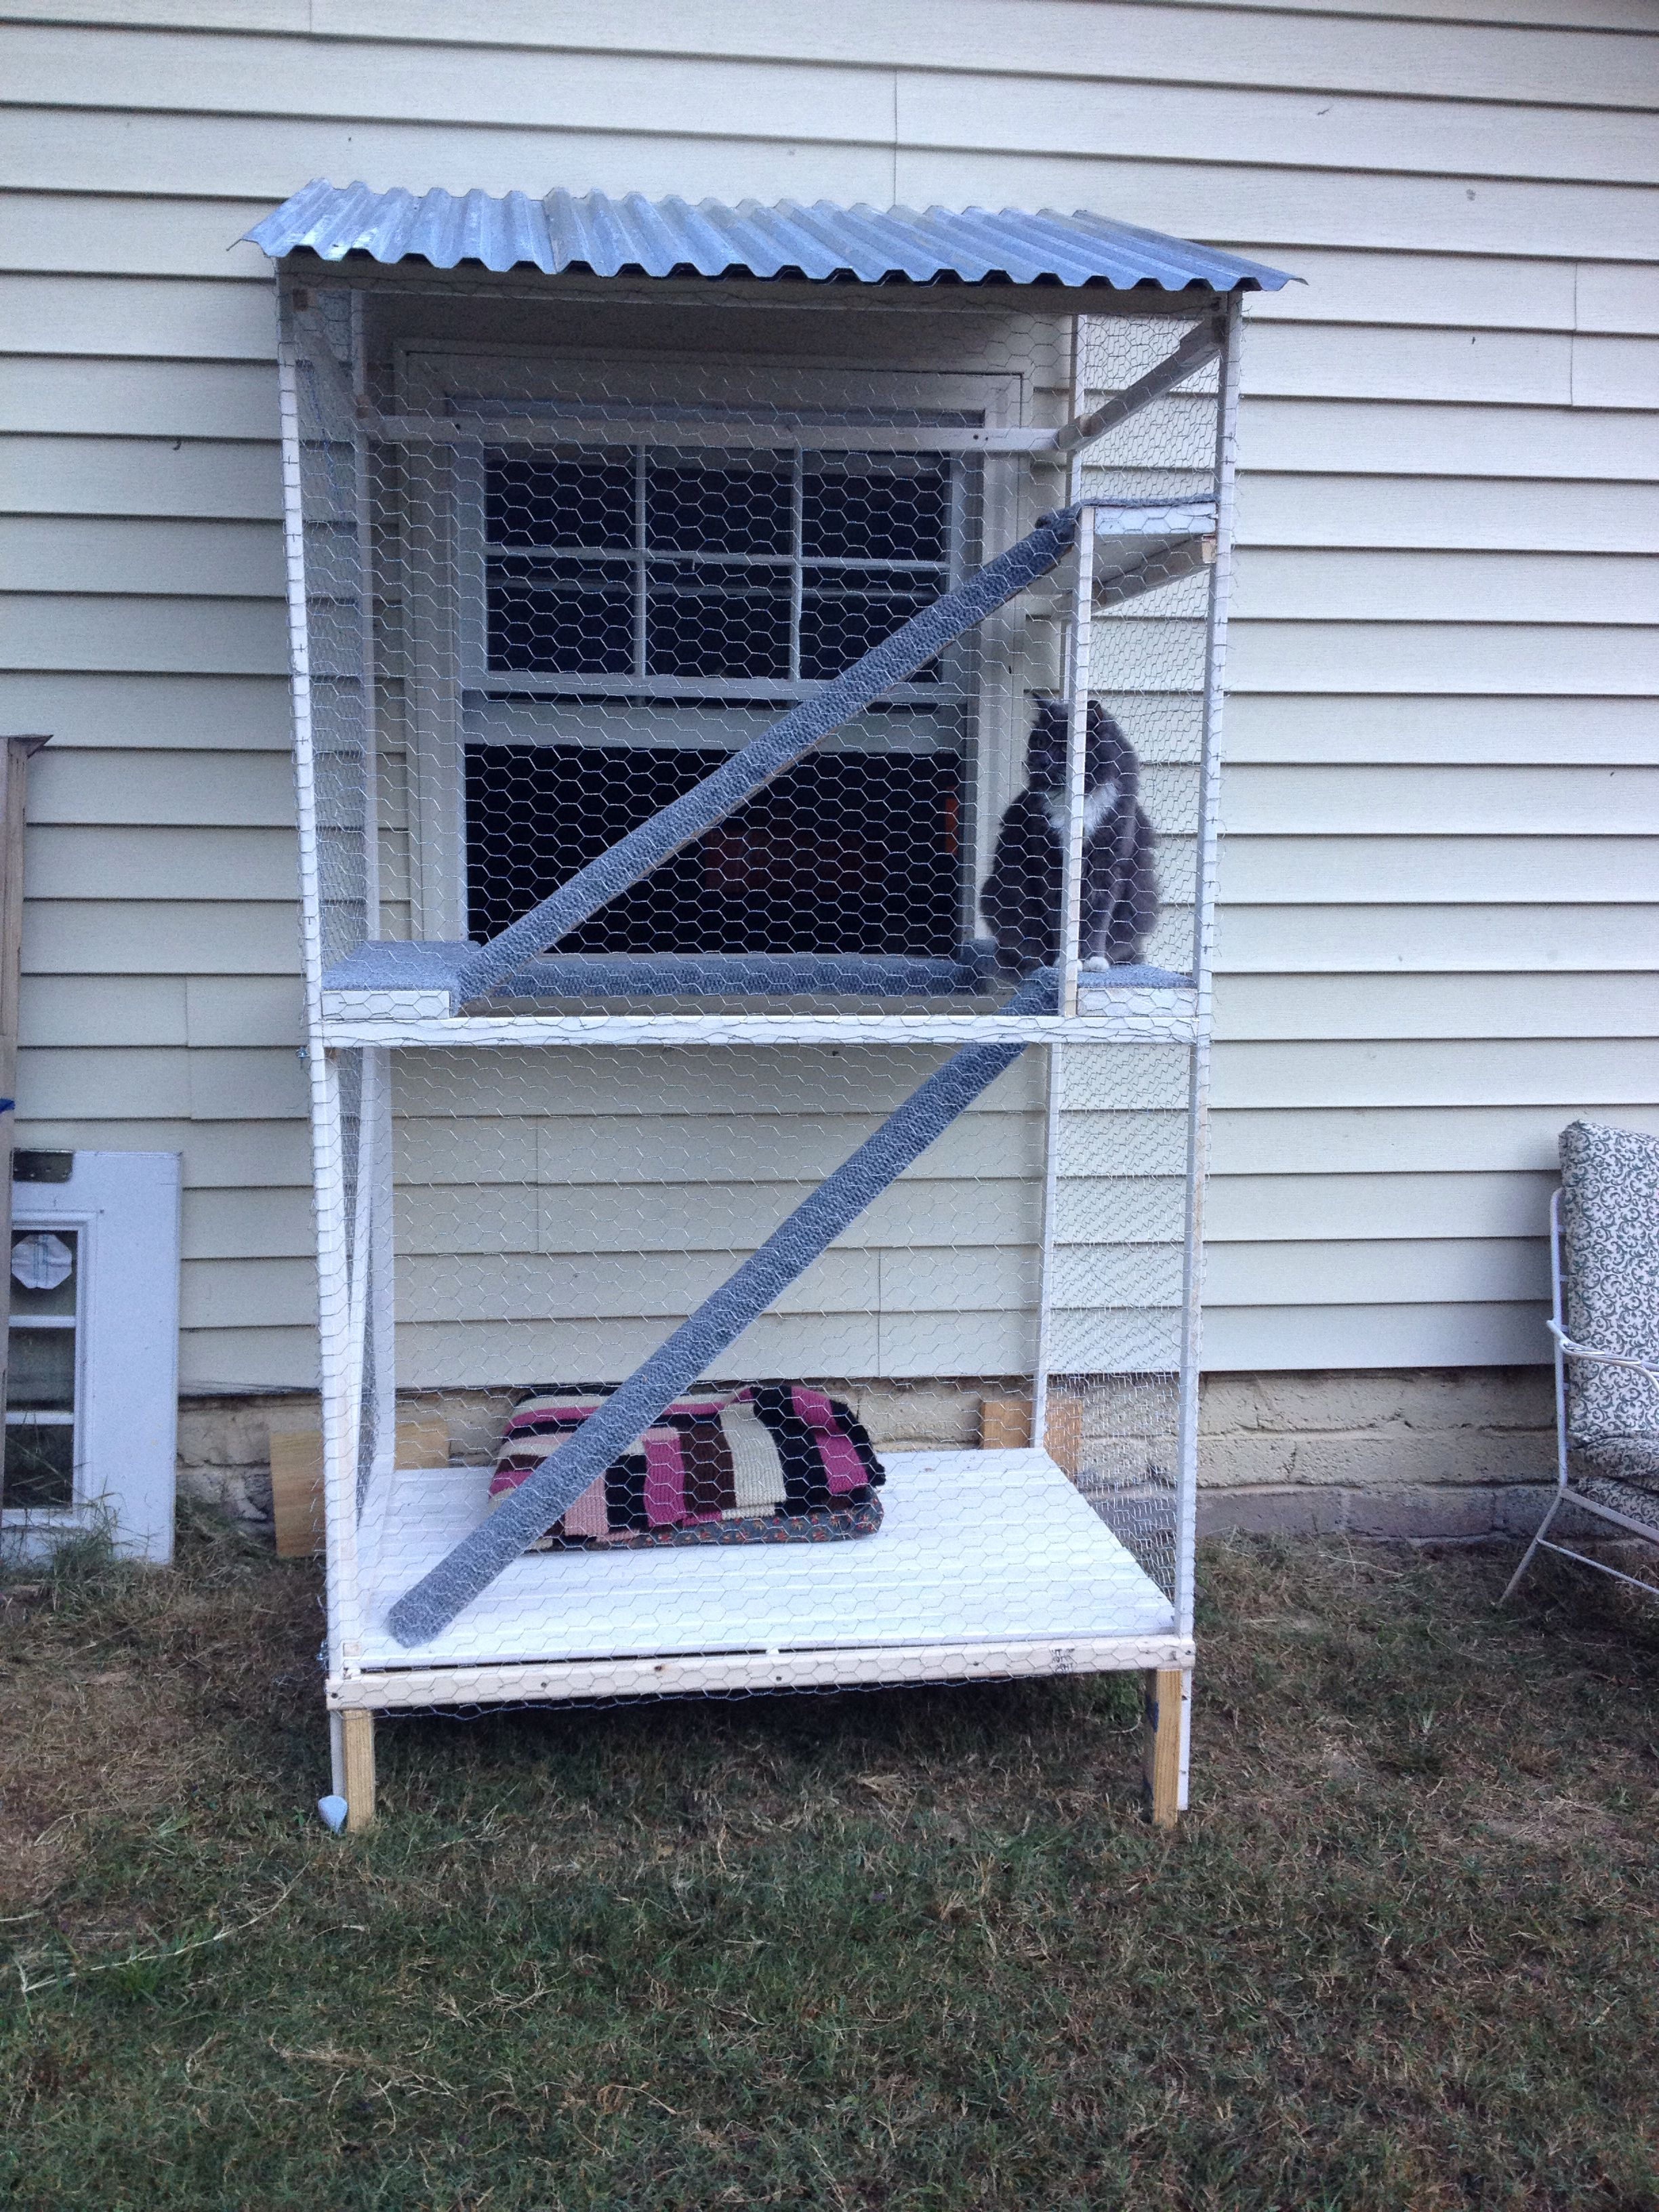 popular our catio a safe outdoor inclosure for indoor catsmy